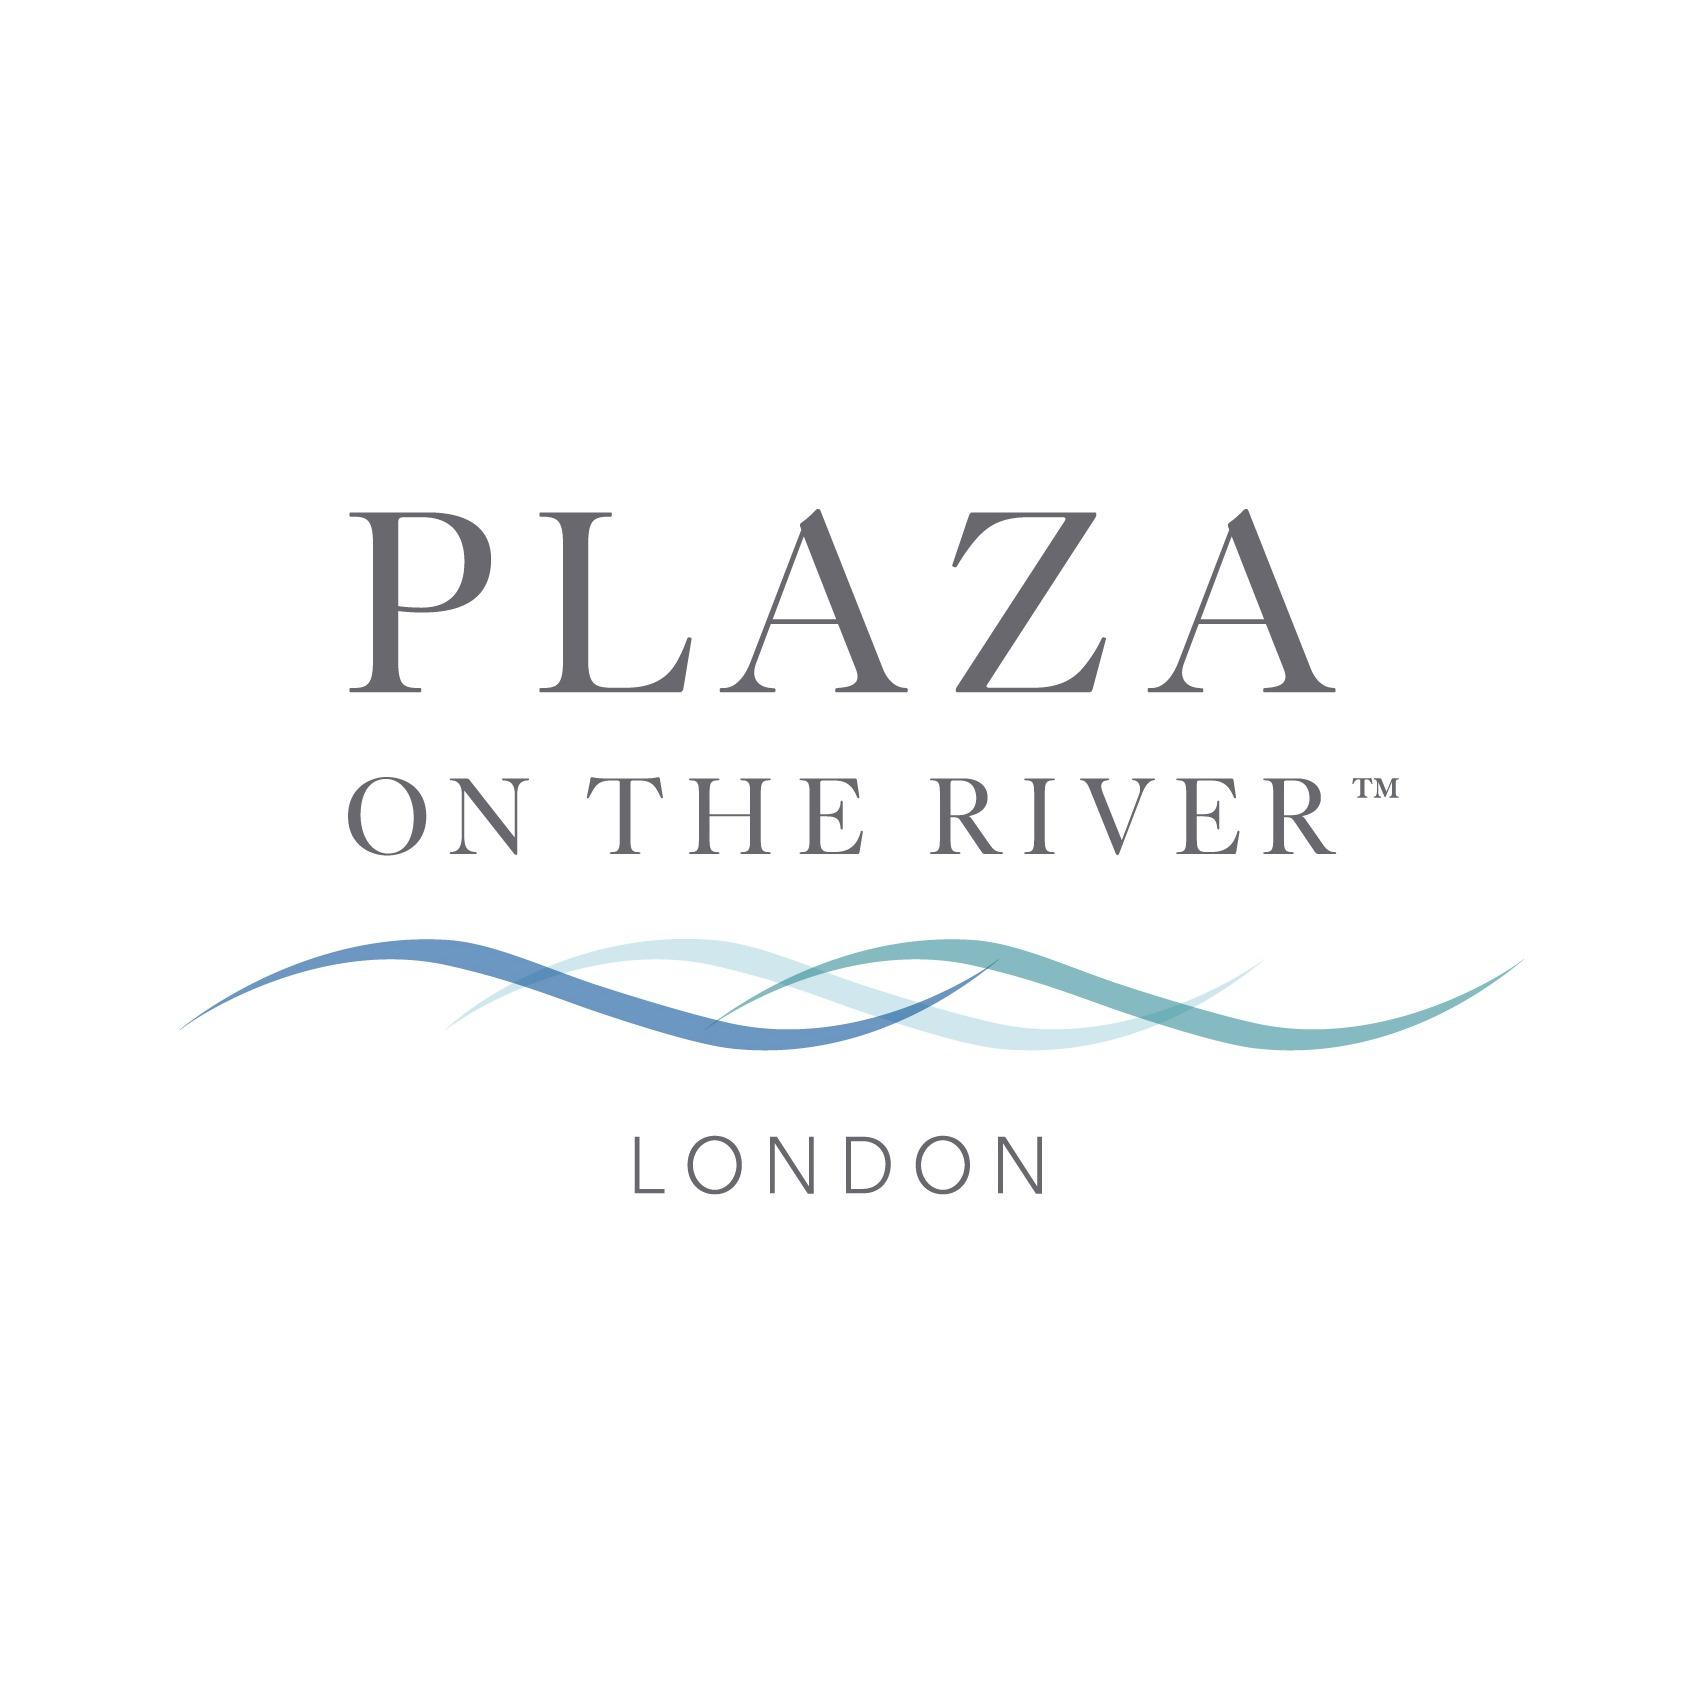 Plaza on the River, London